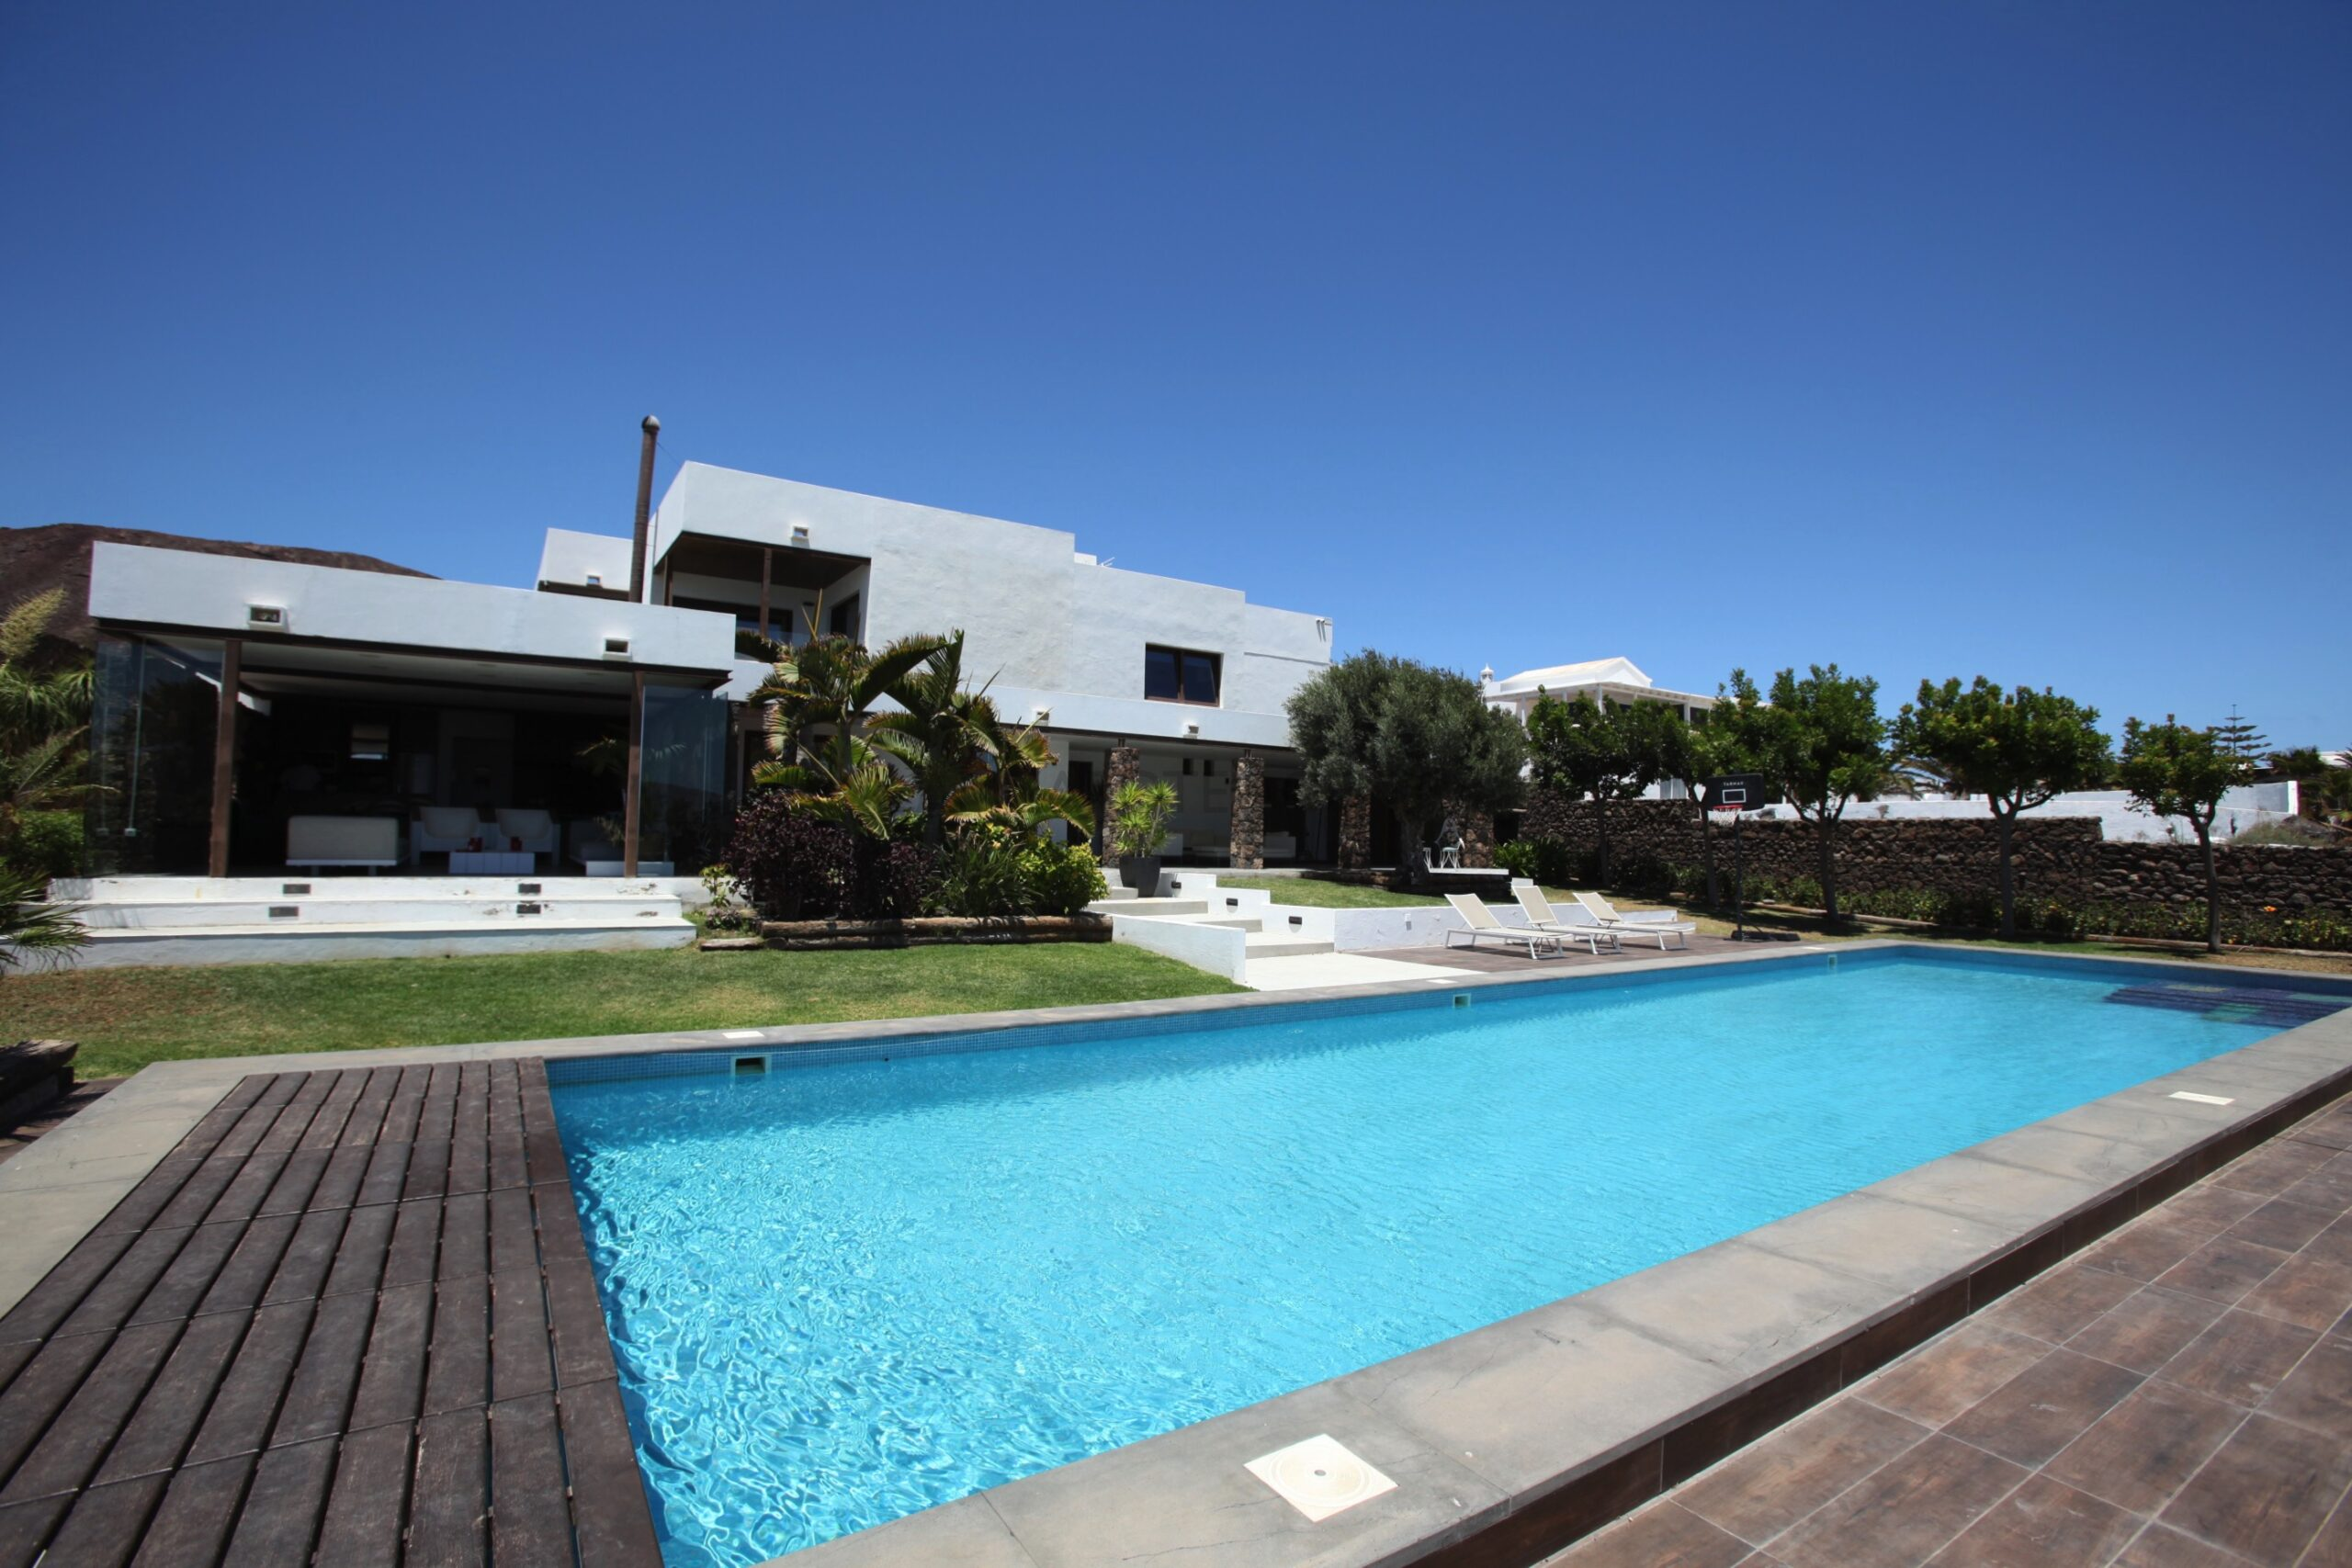 The Best Stunning 5 Bedroom Luxury Villa In Playa Blanca with Breathtaking Views of the Sea and the Femes Mountains.